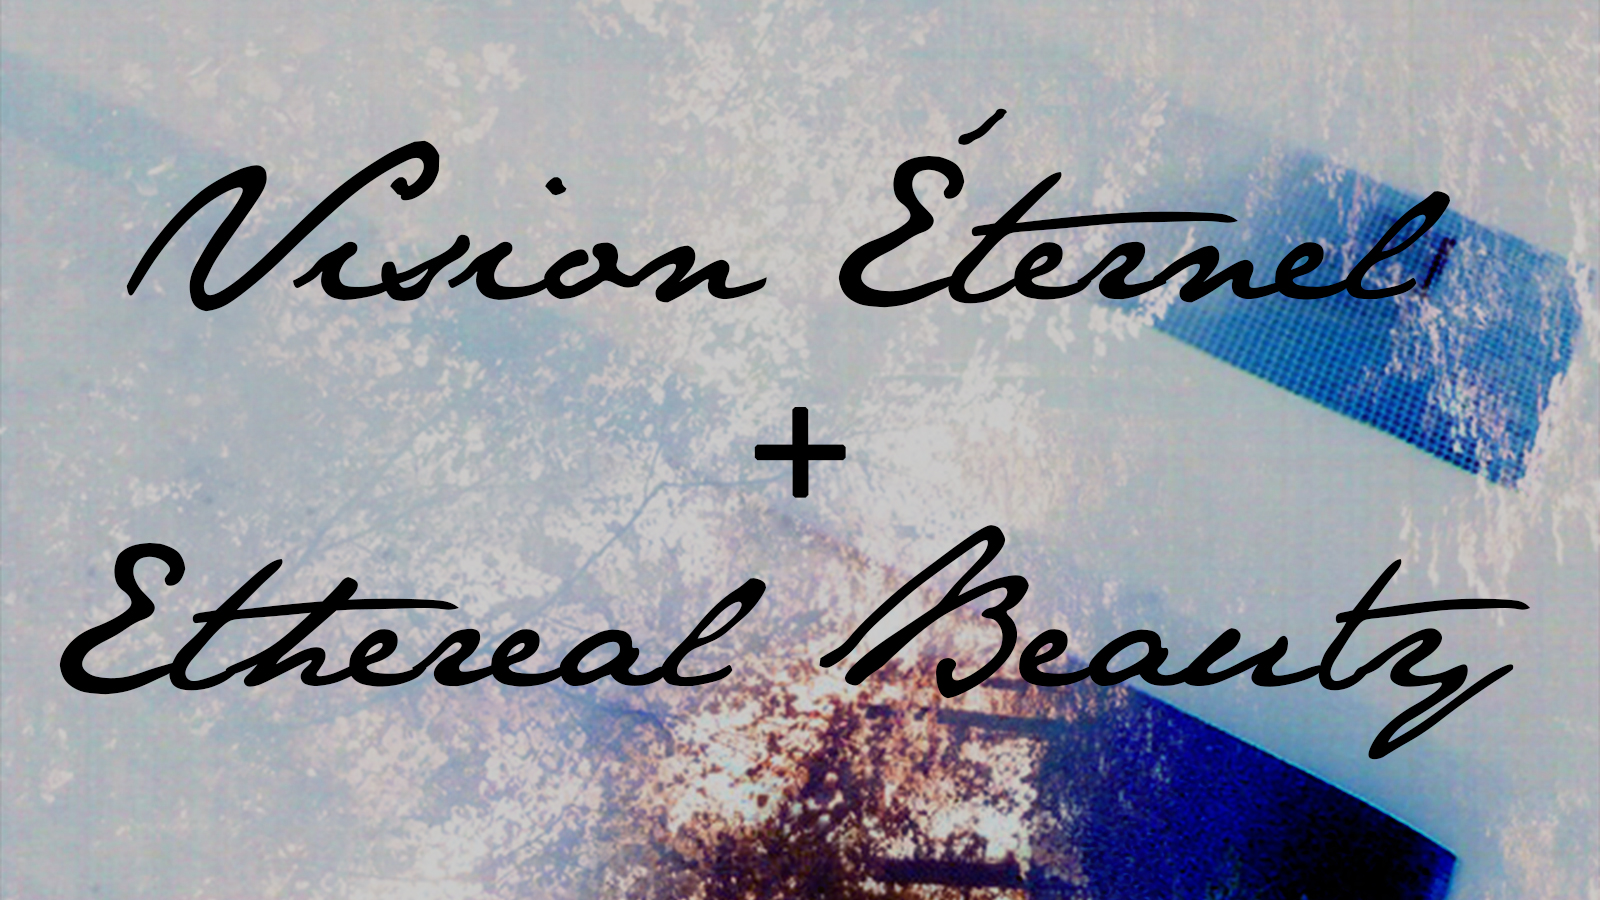 Vision Éternel To Collaborate With Ethereal Beauty